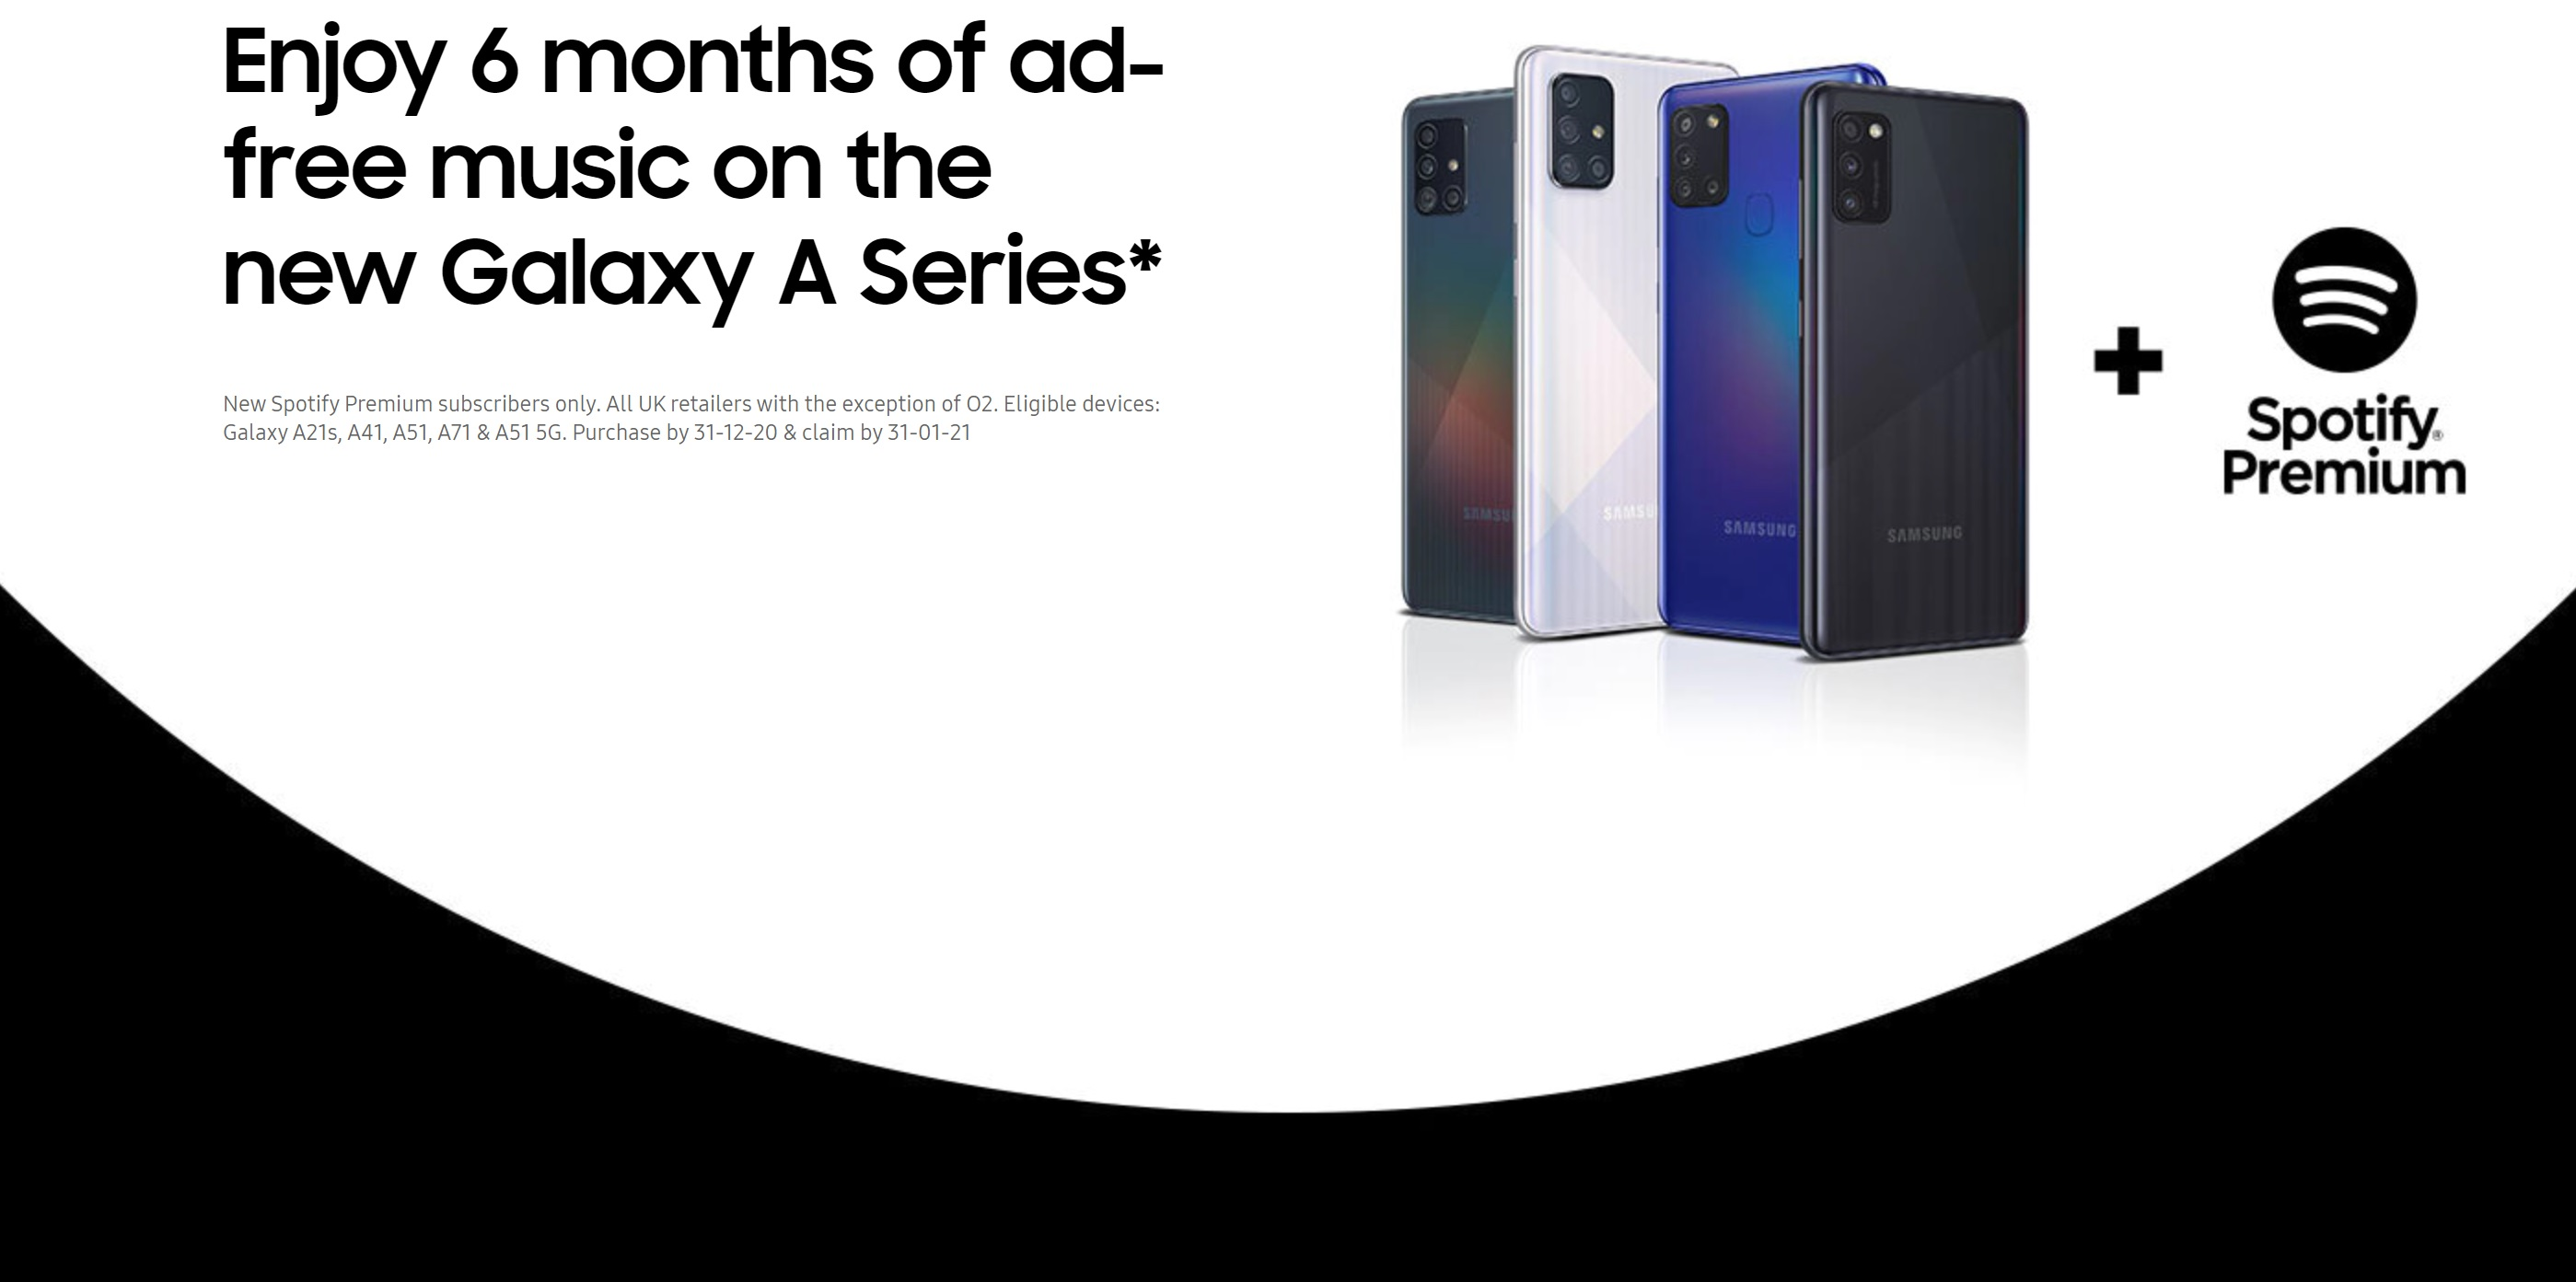 Claim 6 months free Spotify Premium with Samsung Galaxy A51 and A71 contract deals